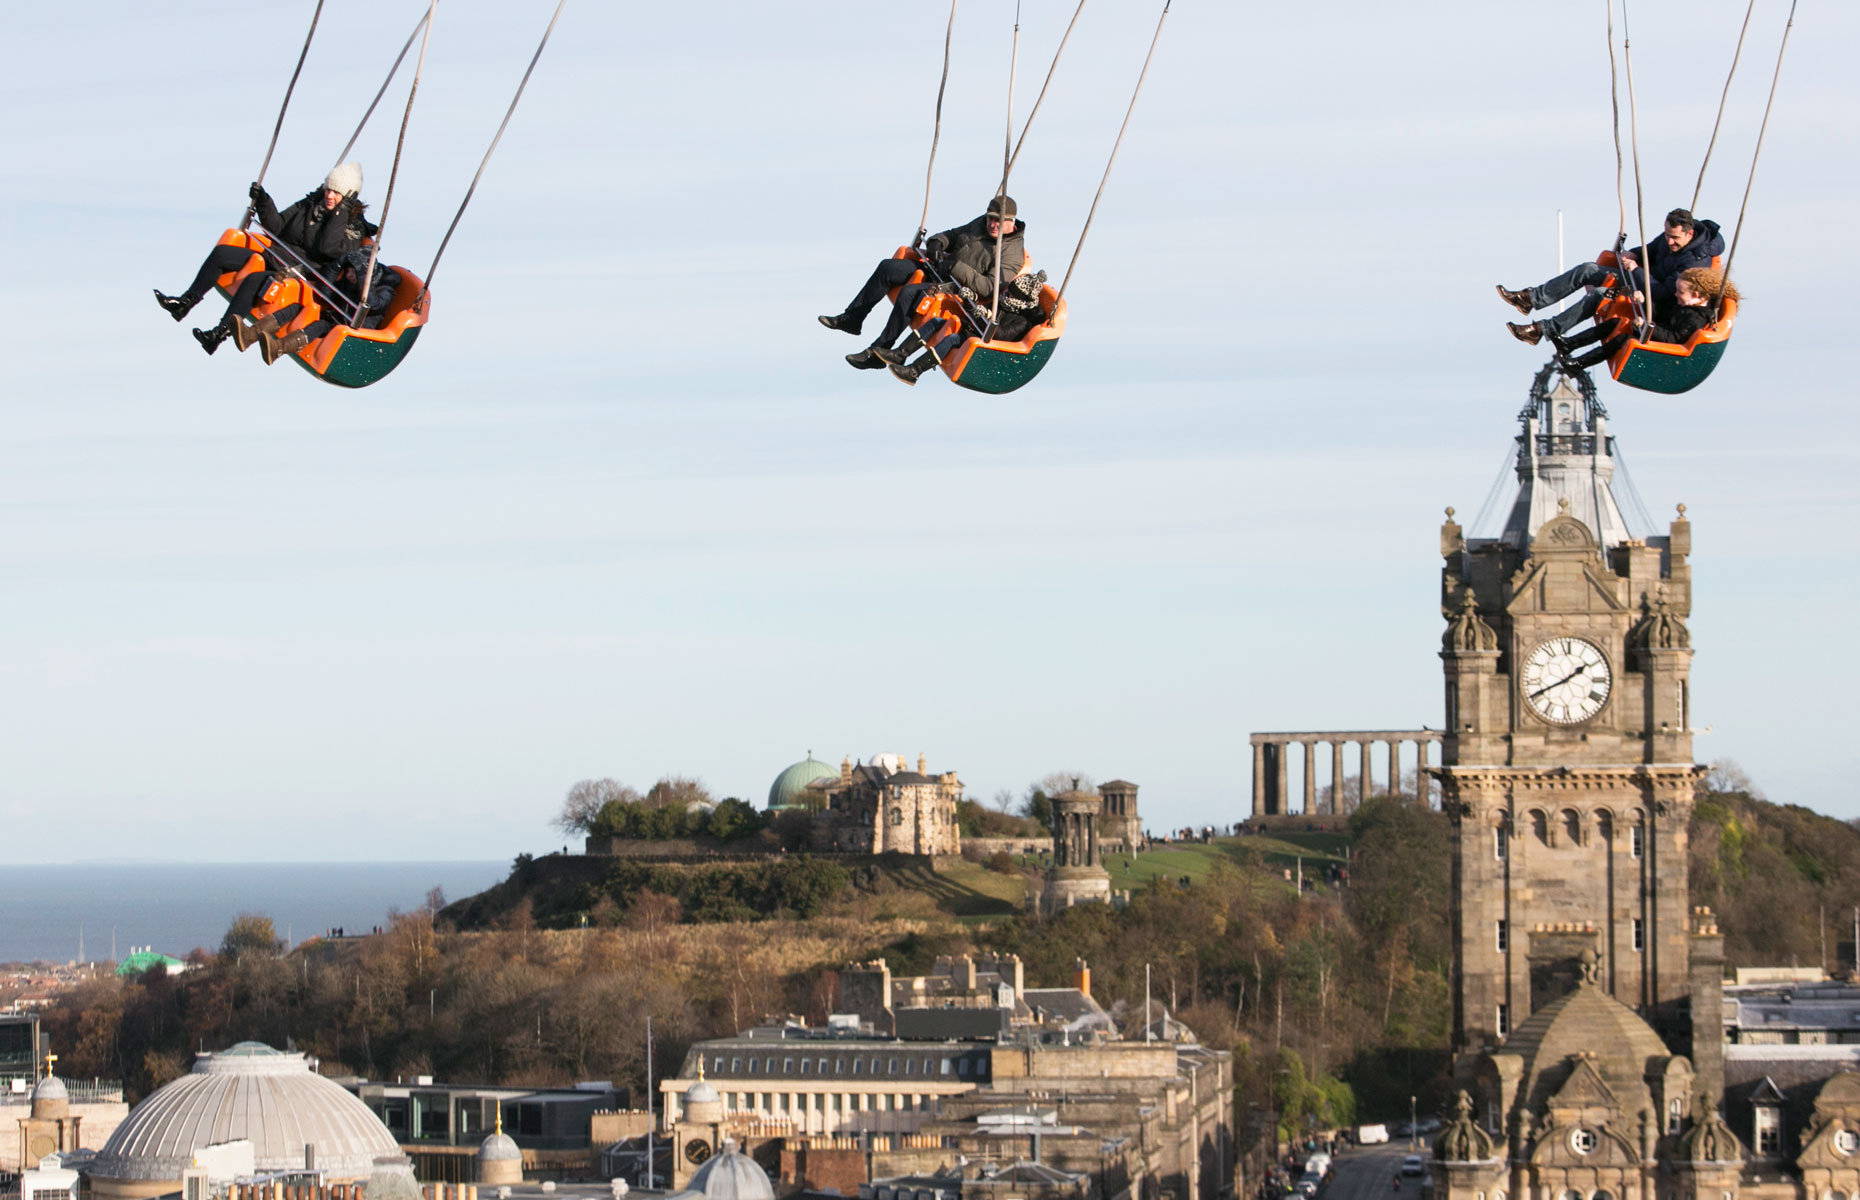 Whizz above the city on the many fairground rides at Edinburgh's Christmas 2018